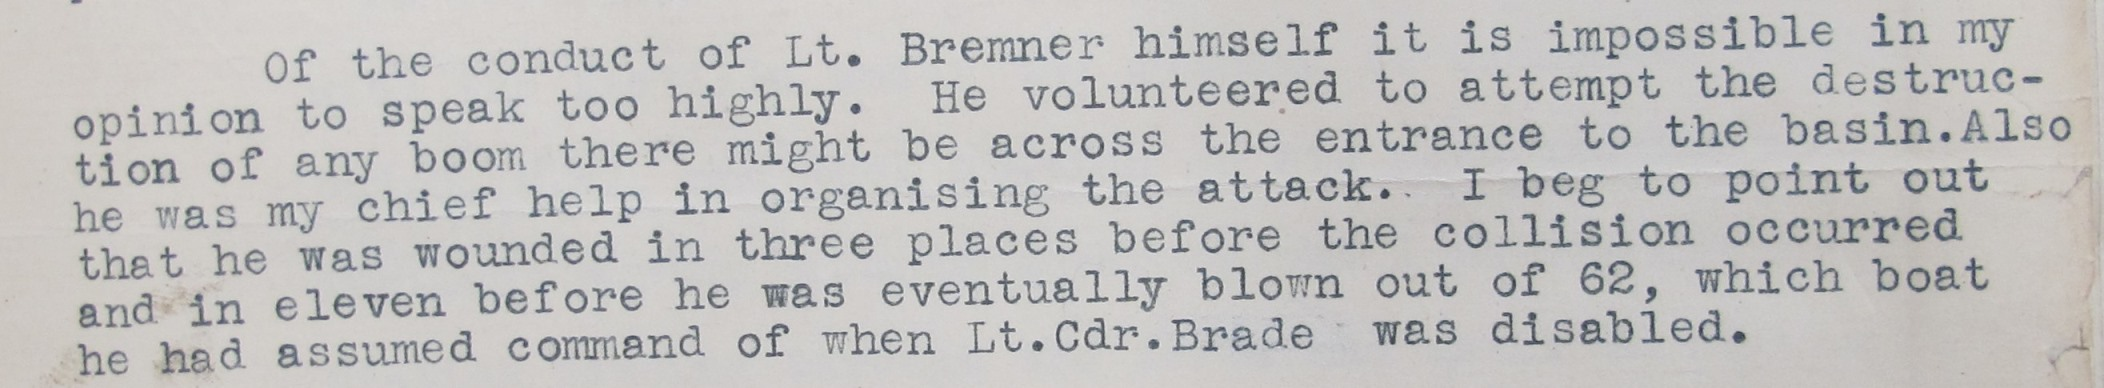 Report on the action focused on a man called Bremner, who 'volunteered to attempt the destruction of any boom there might be across the entrance to the basin'.